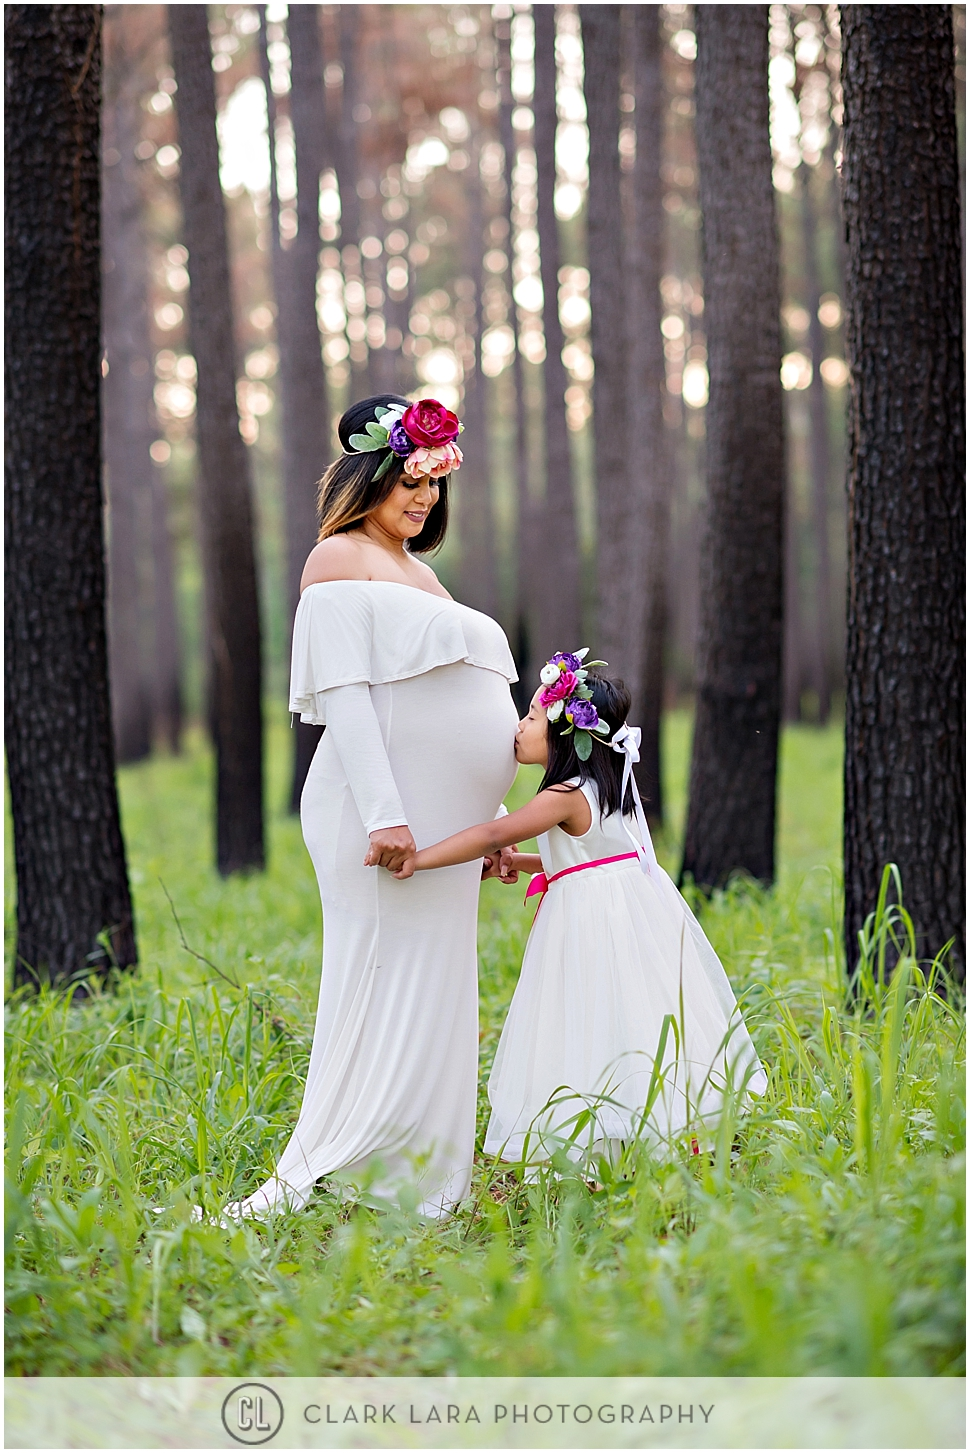 woodlands-family-maternity-photography-tua_0013.jpg